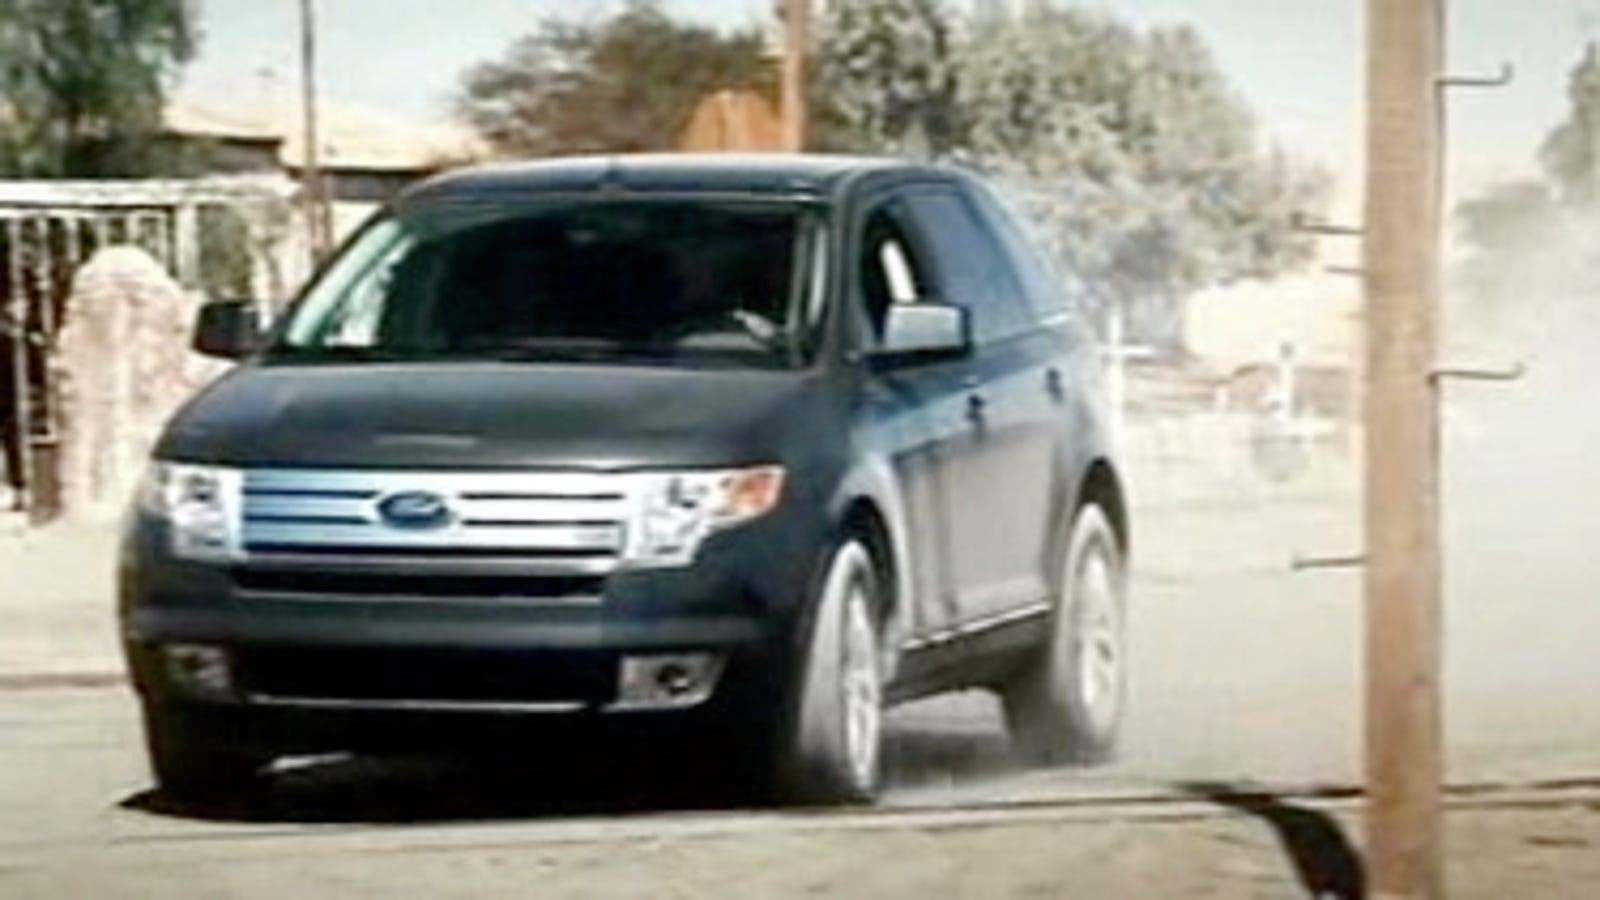 Bond Bad Guy Car Of Choice Ford Edge Is The New Explorer Escalade Or Suburban